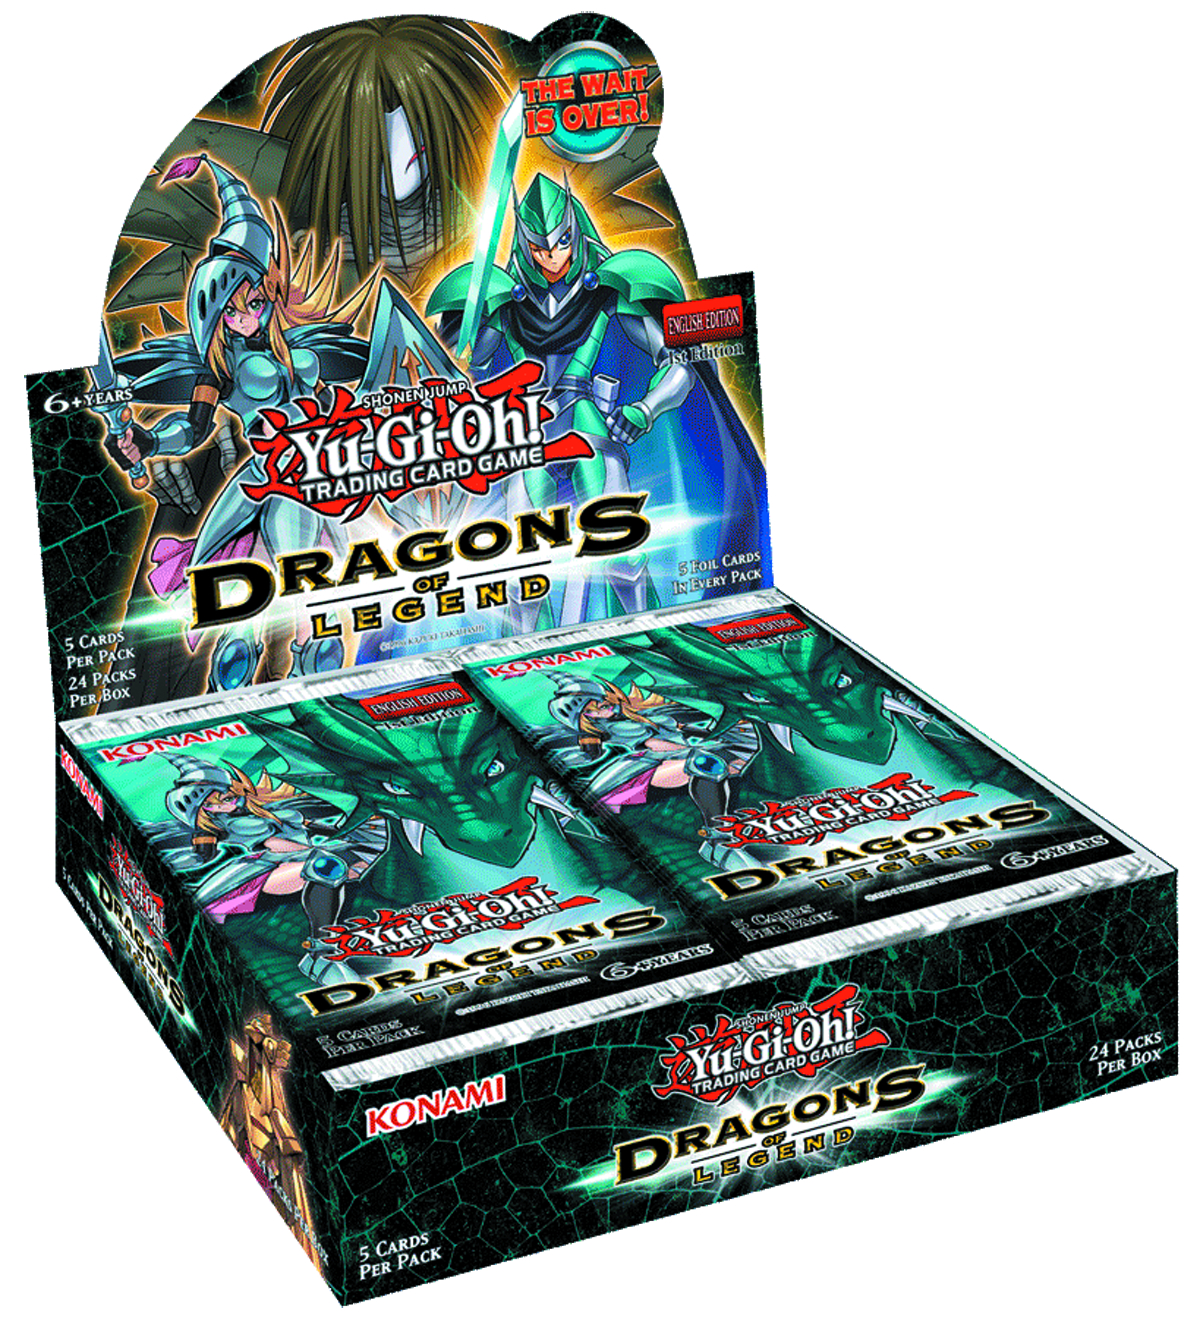 YU GI OH TCG DRAGONS OF LEGEND BOOSTER DIS